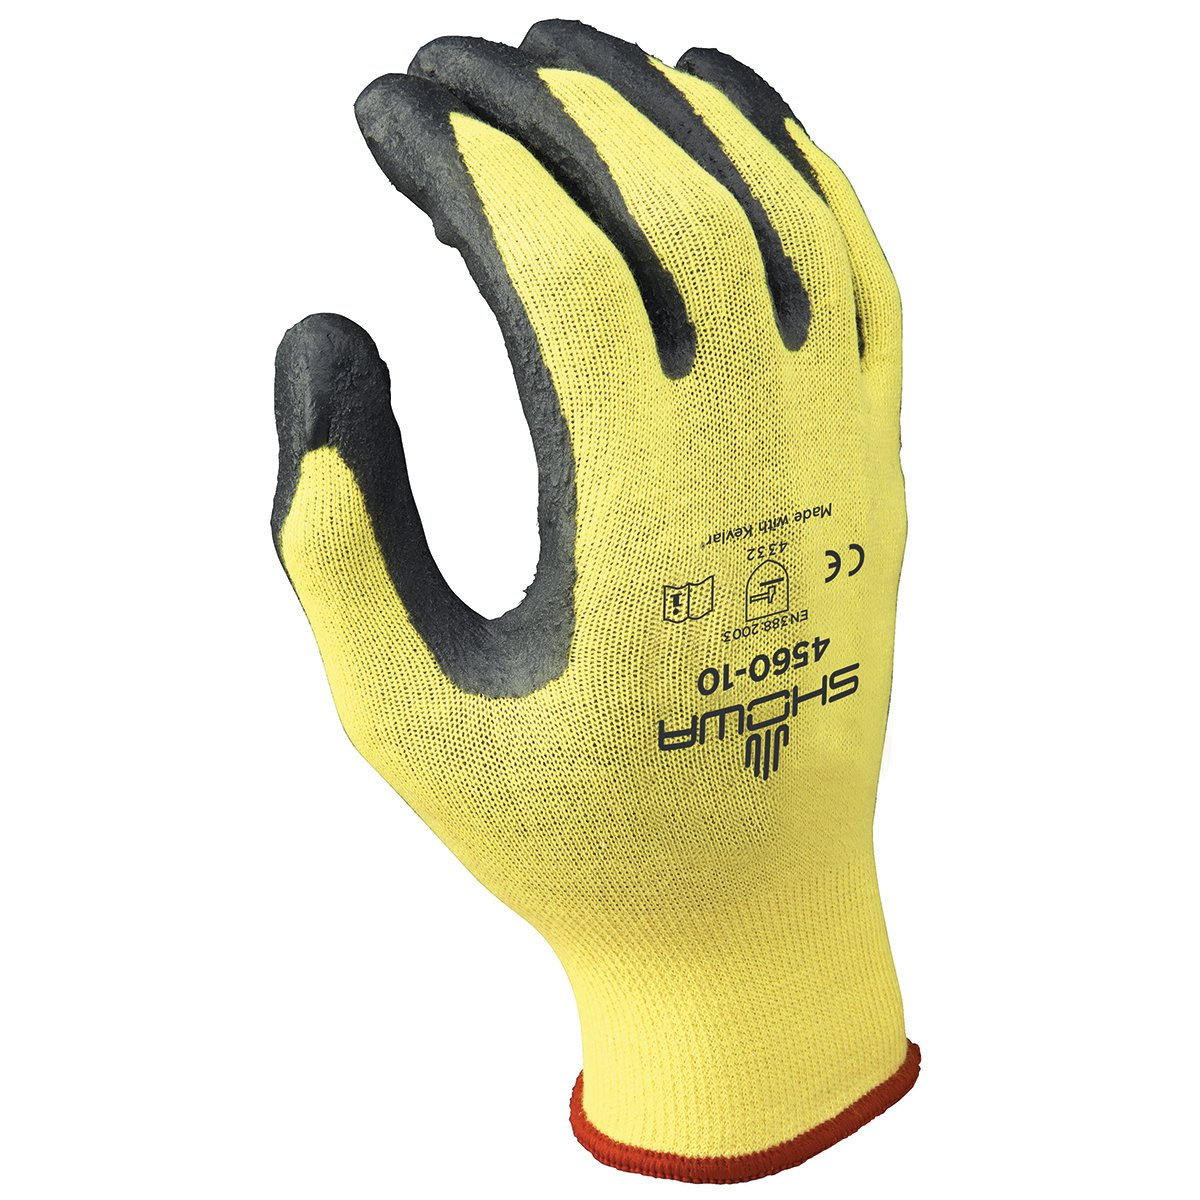 SHOWA 4560 Zorb-IT Nitrile Glove with Kevlar Liner, X-Large (Pack of 12 Pairs)